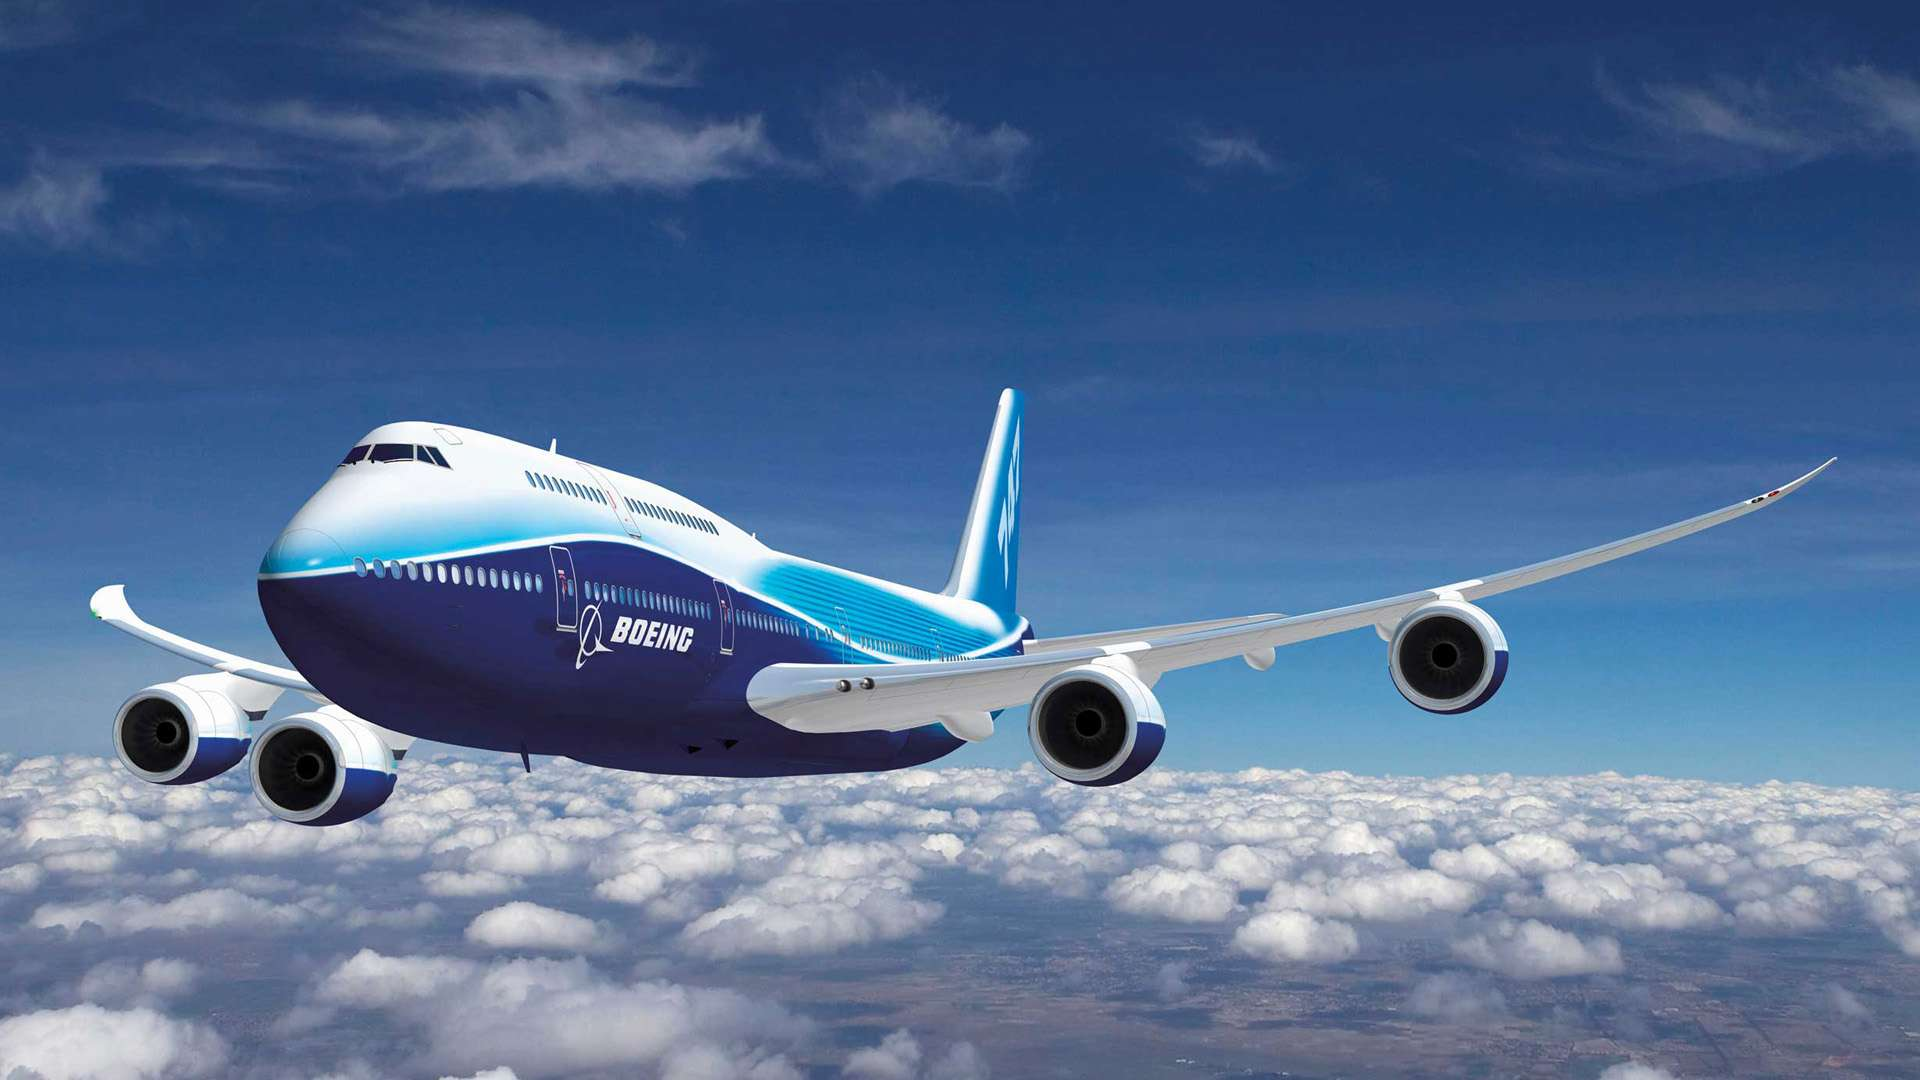 1920x1080 - Boeing 747 Wallpapers 12